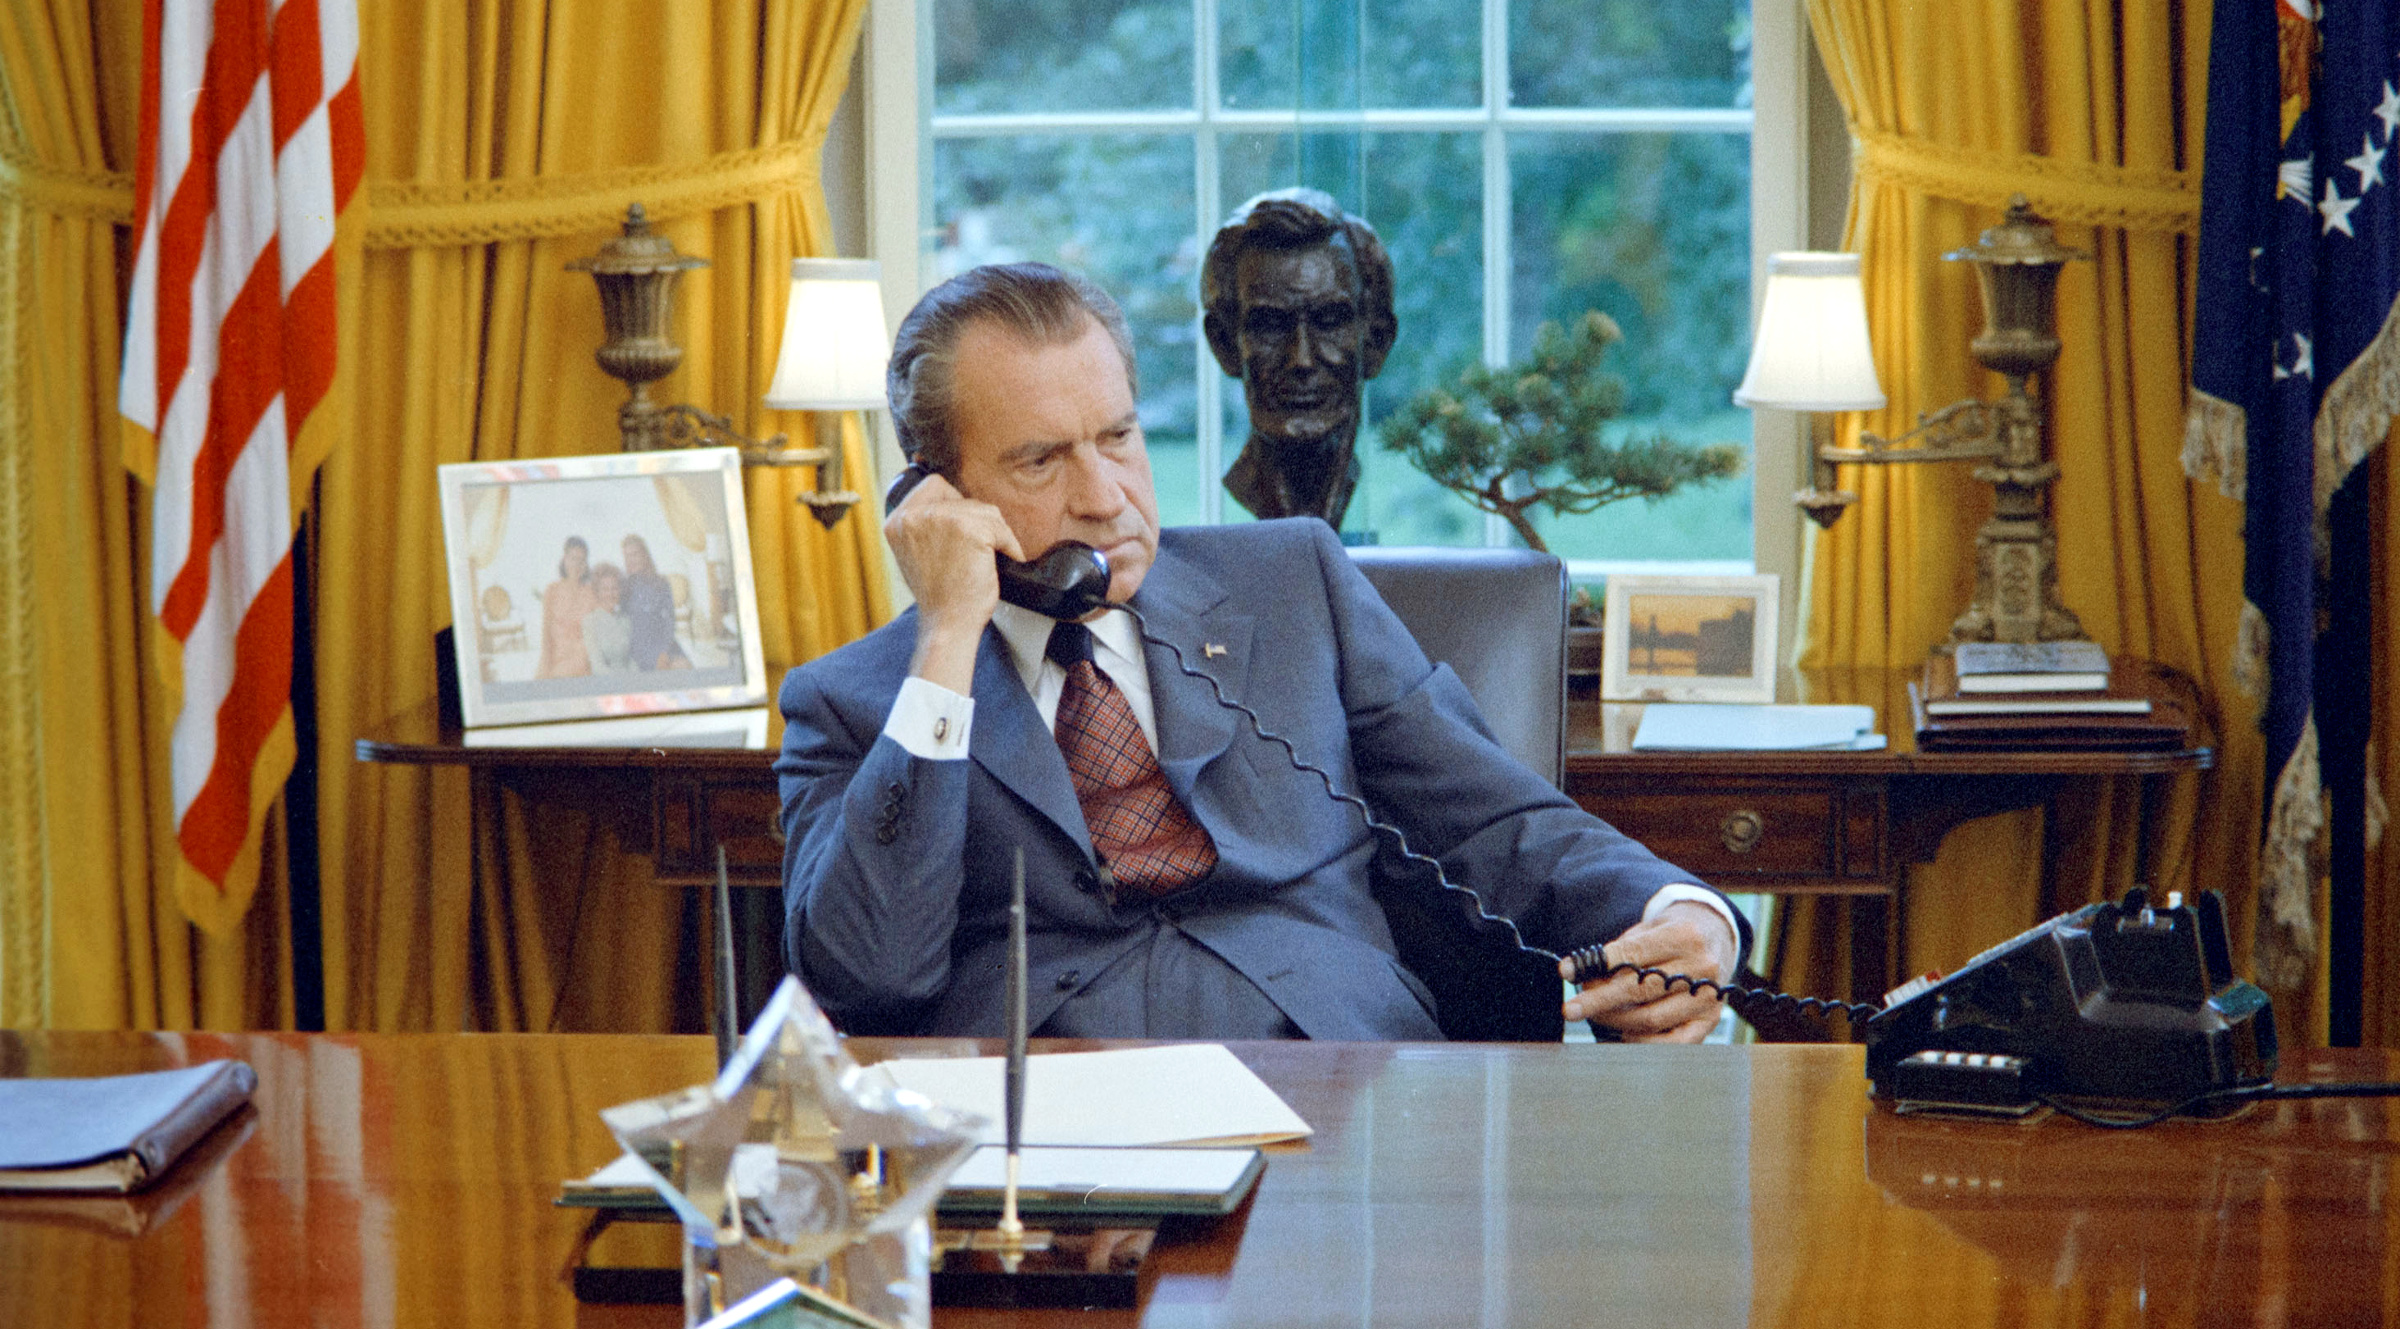 U.S. President Richard Nixon seated at his desk, with family photos and the Lincoln bust statuette visible behind him, in the White House Oval Office in Washington, U.S. on June 23, 1972.